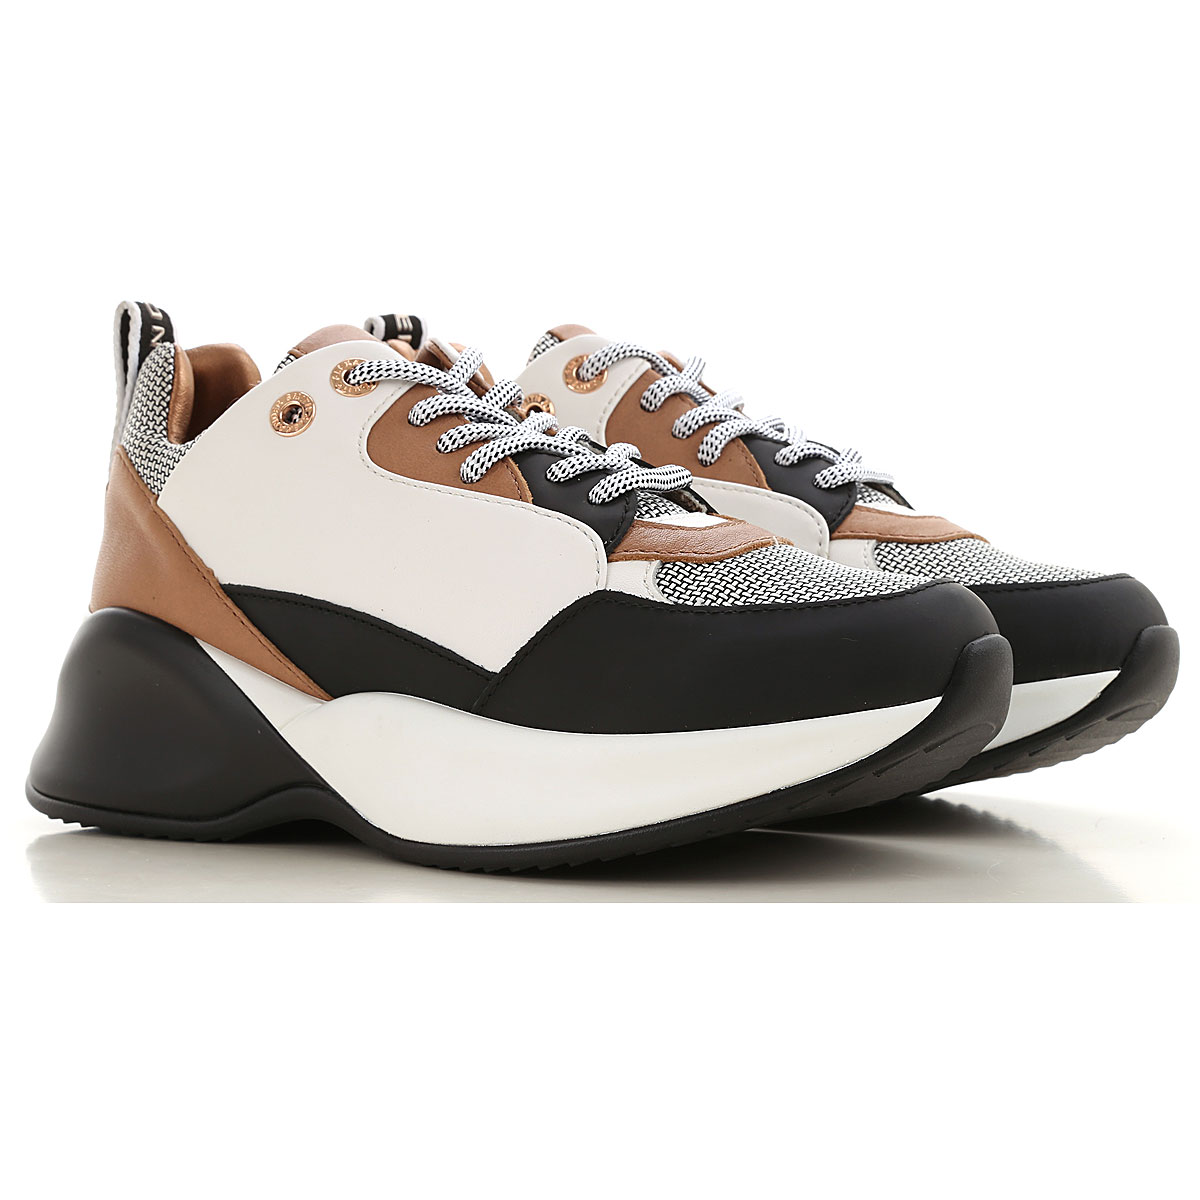 Alexander Smith Sneakers for Women On Sale, Nude, Leather, 2019, 10 5 6 7 9